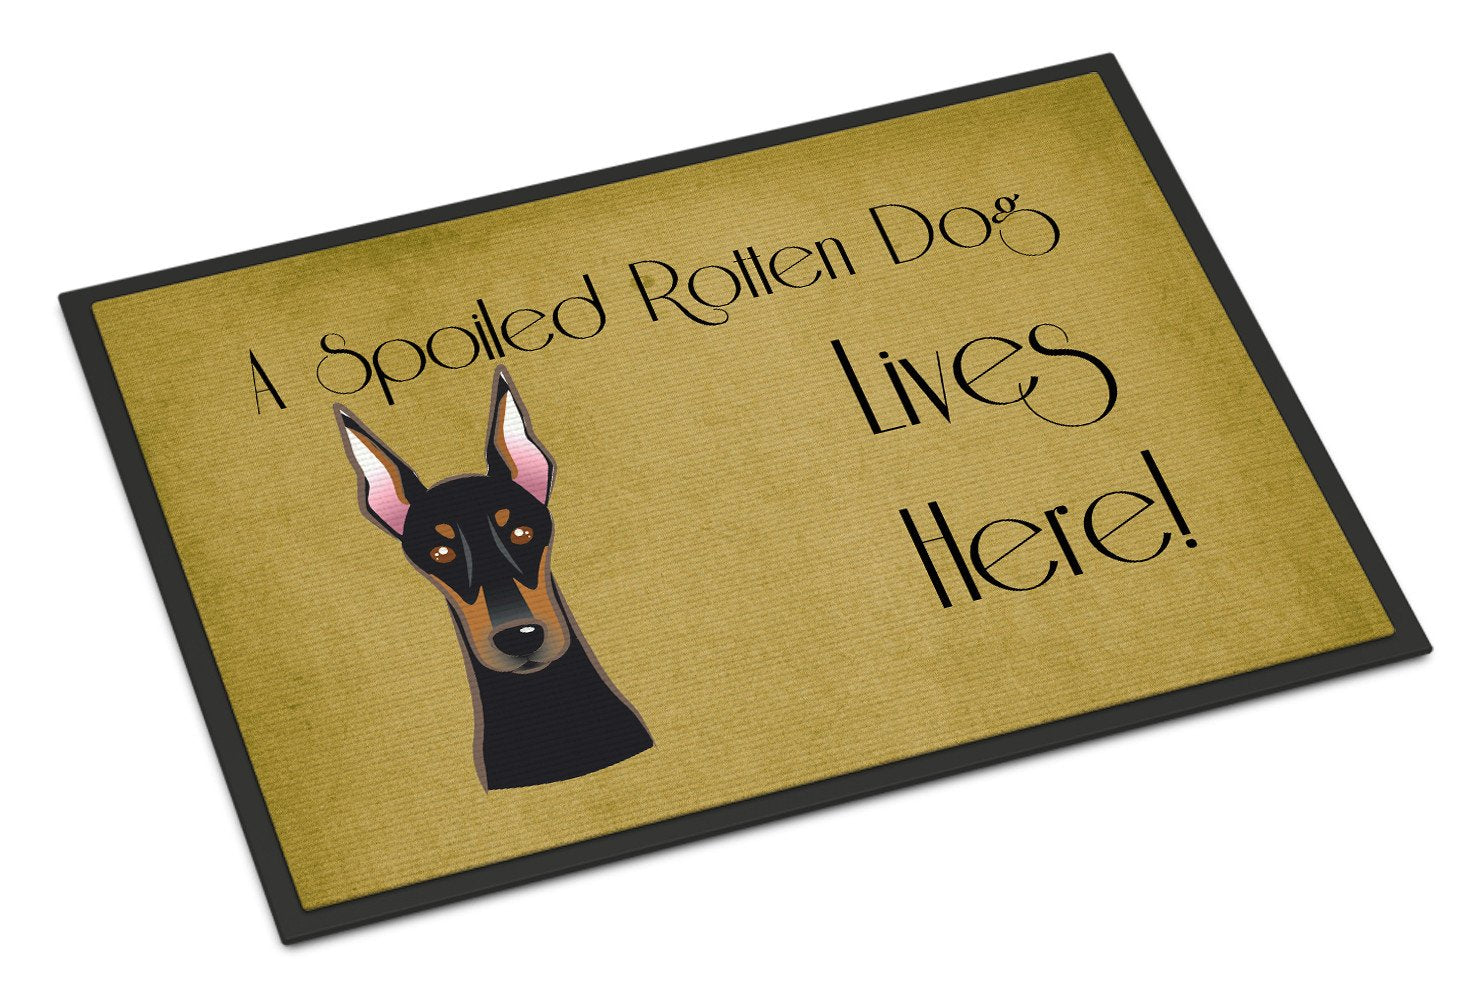 Doberman Spoiled Dog Lives Here Indoor or Outdoor Mat 18x27 BB1493MAT - the-store.com